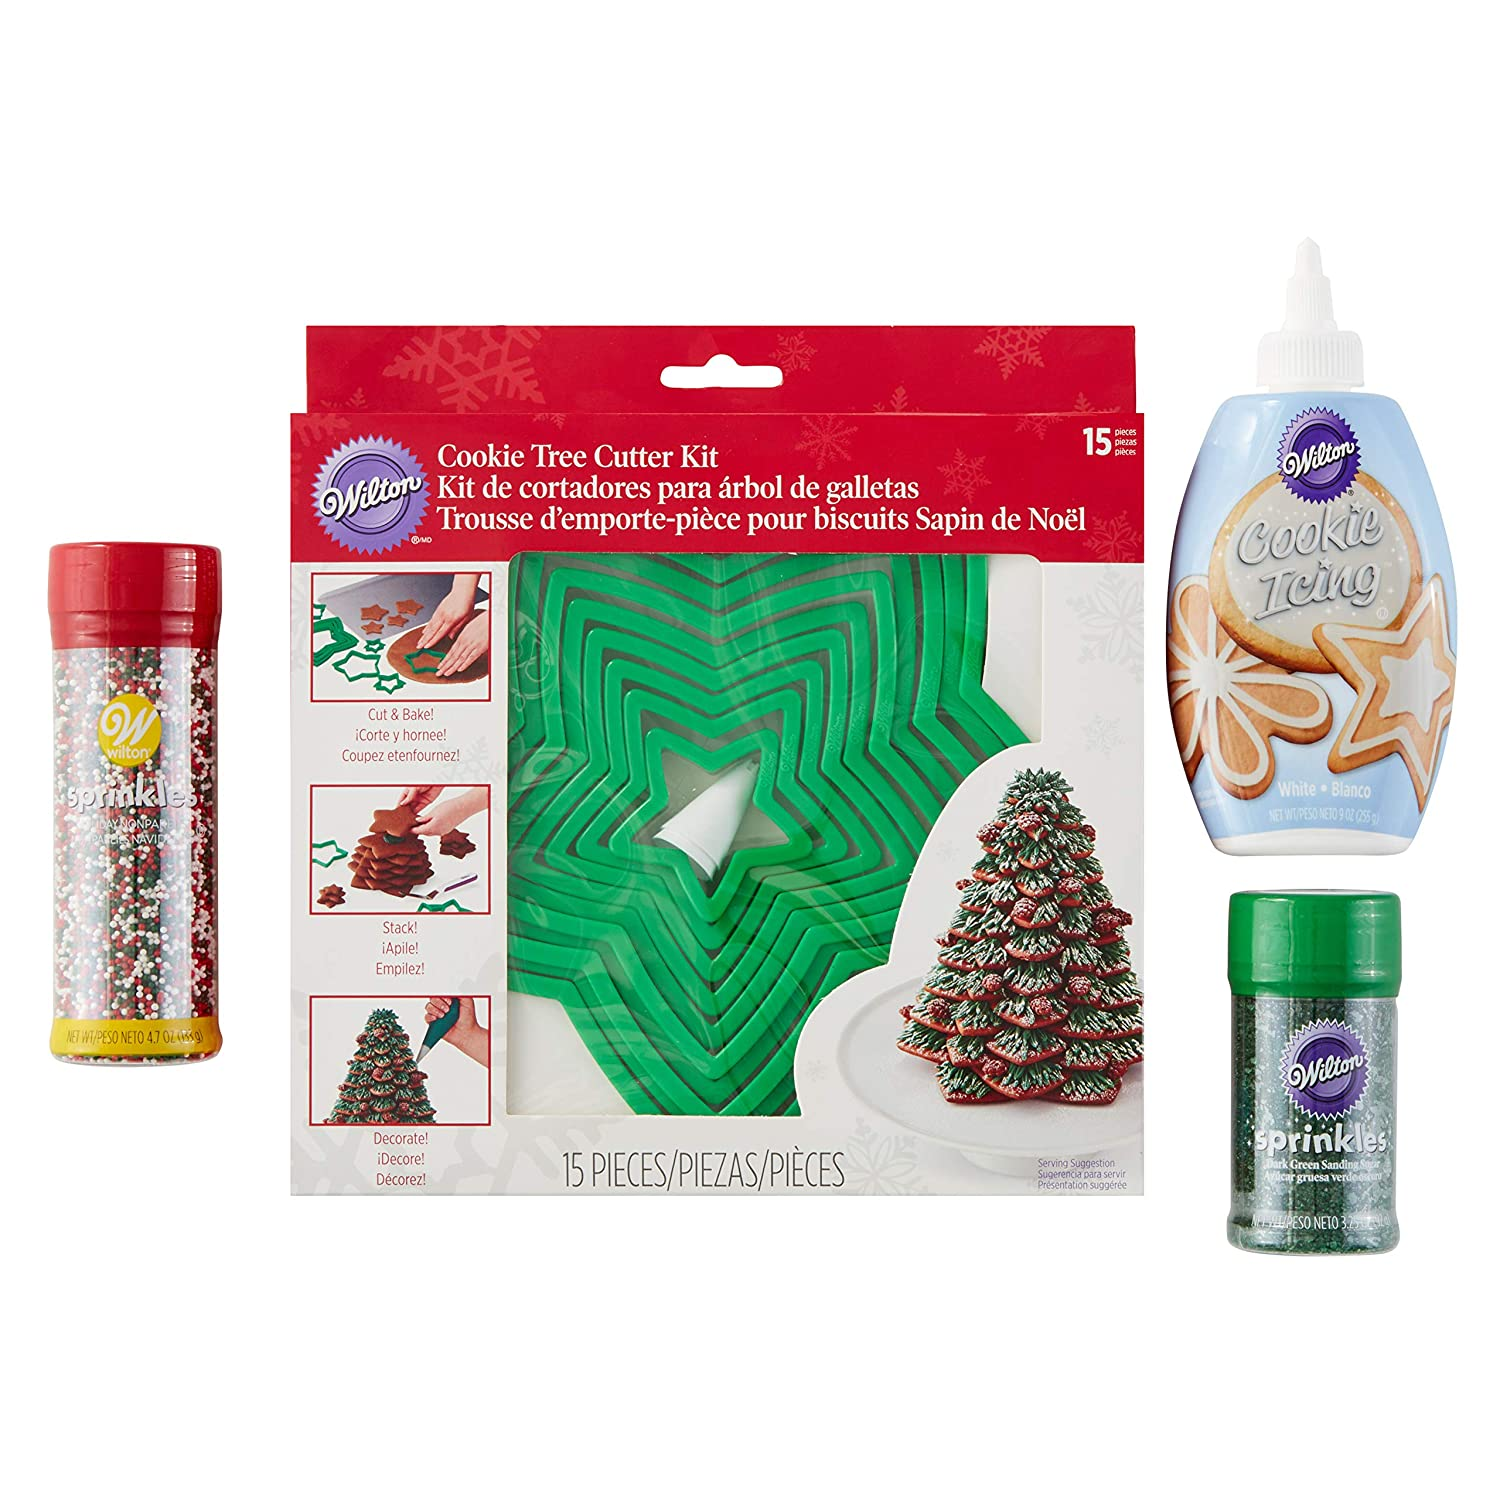 Amazon.com: Wilton Holiday Tree Cookie Cutter and Decorating Set, 18-Piece: Kitchen & Dining